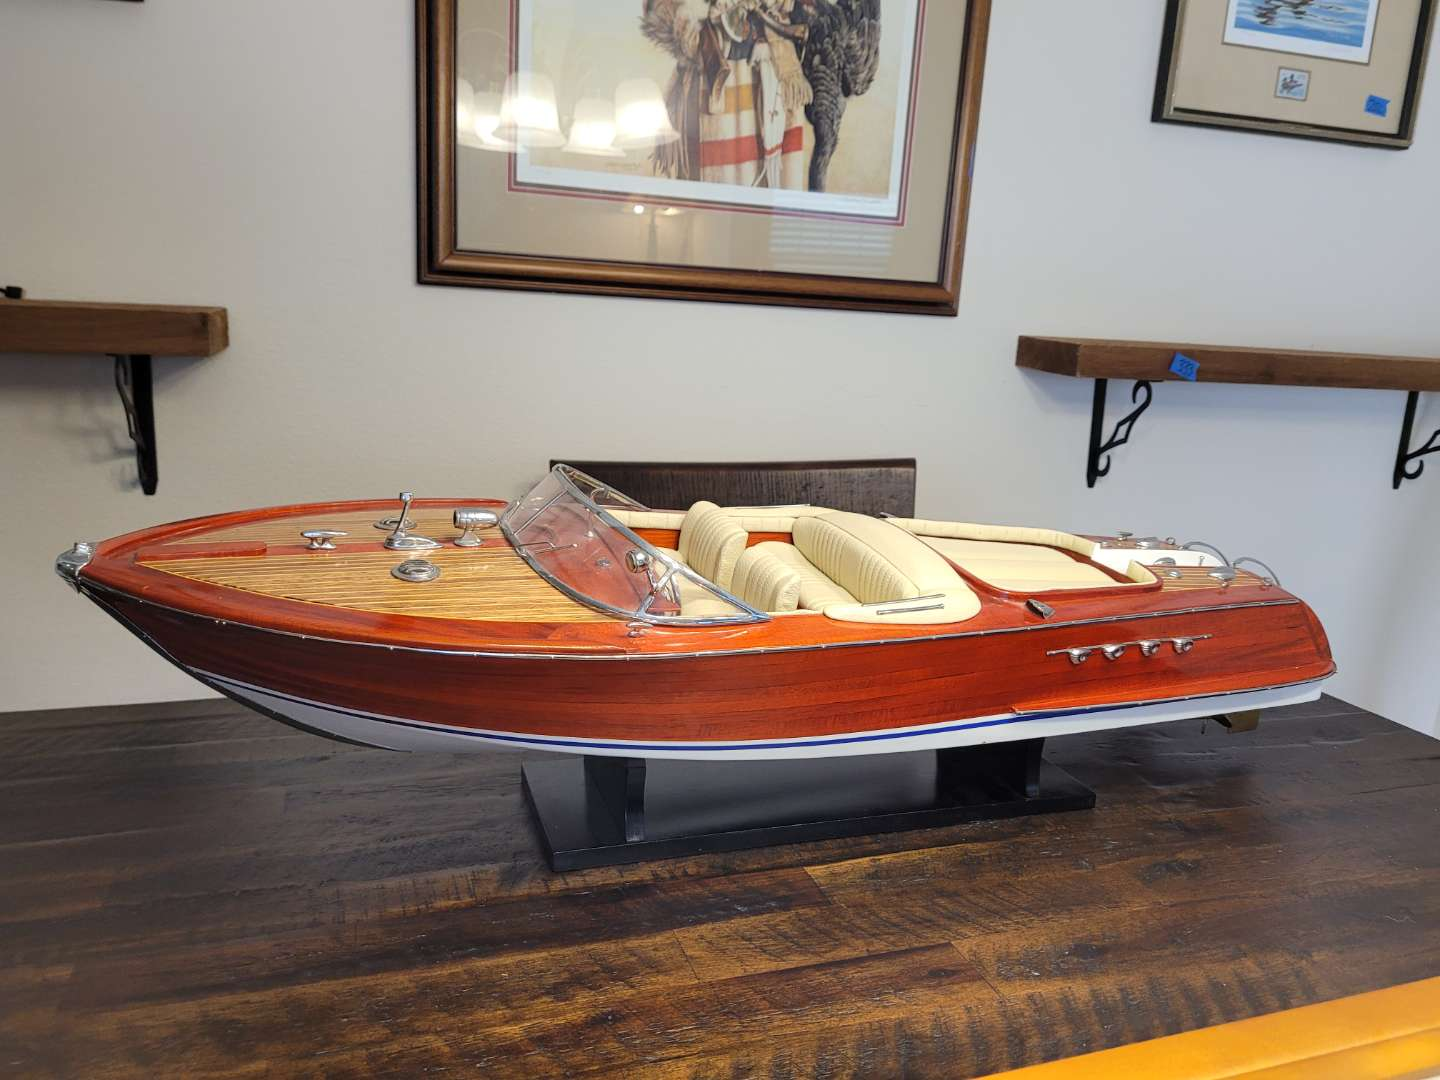 Lot # 469 Handcrafted Wood Replica of Vintage Boat on Stand - Almost 3ft